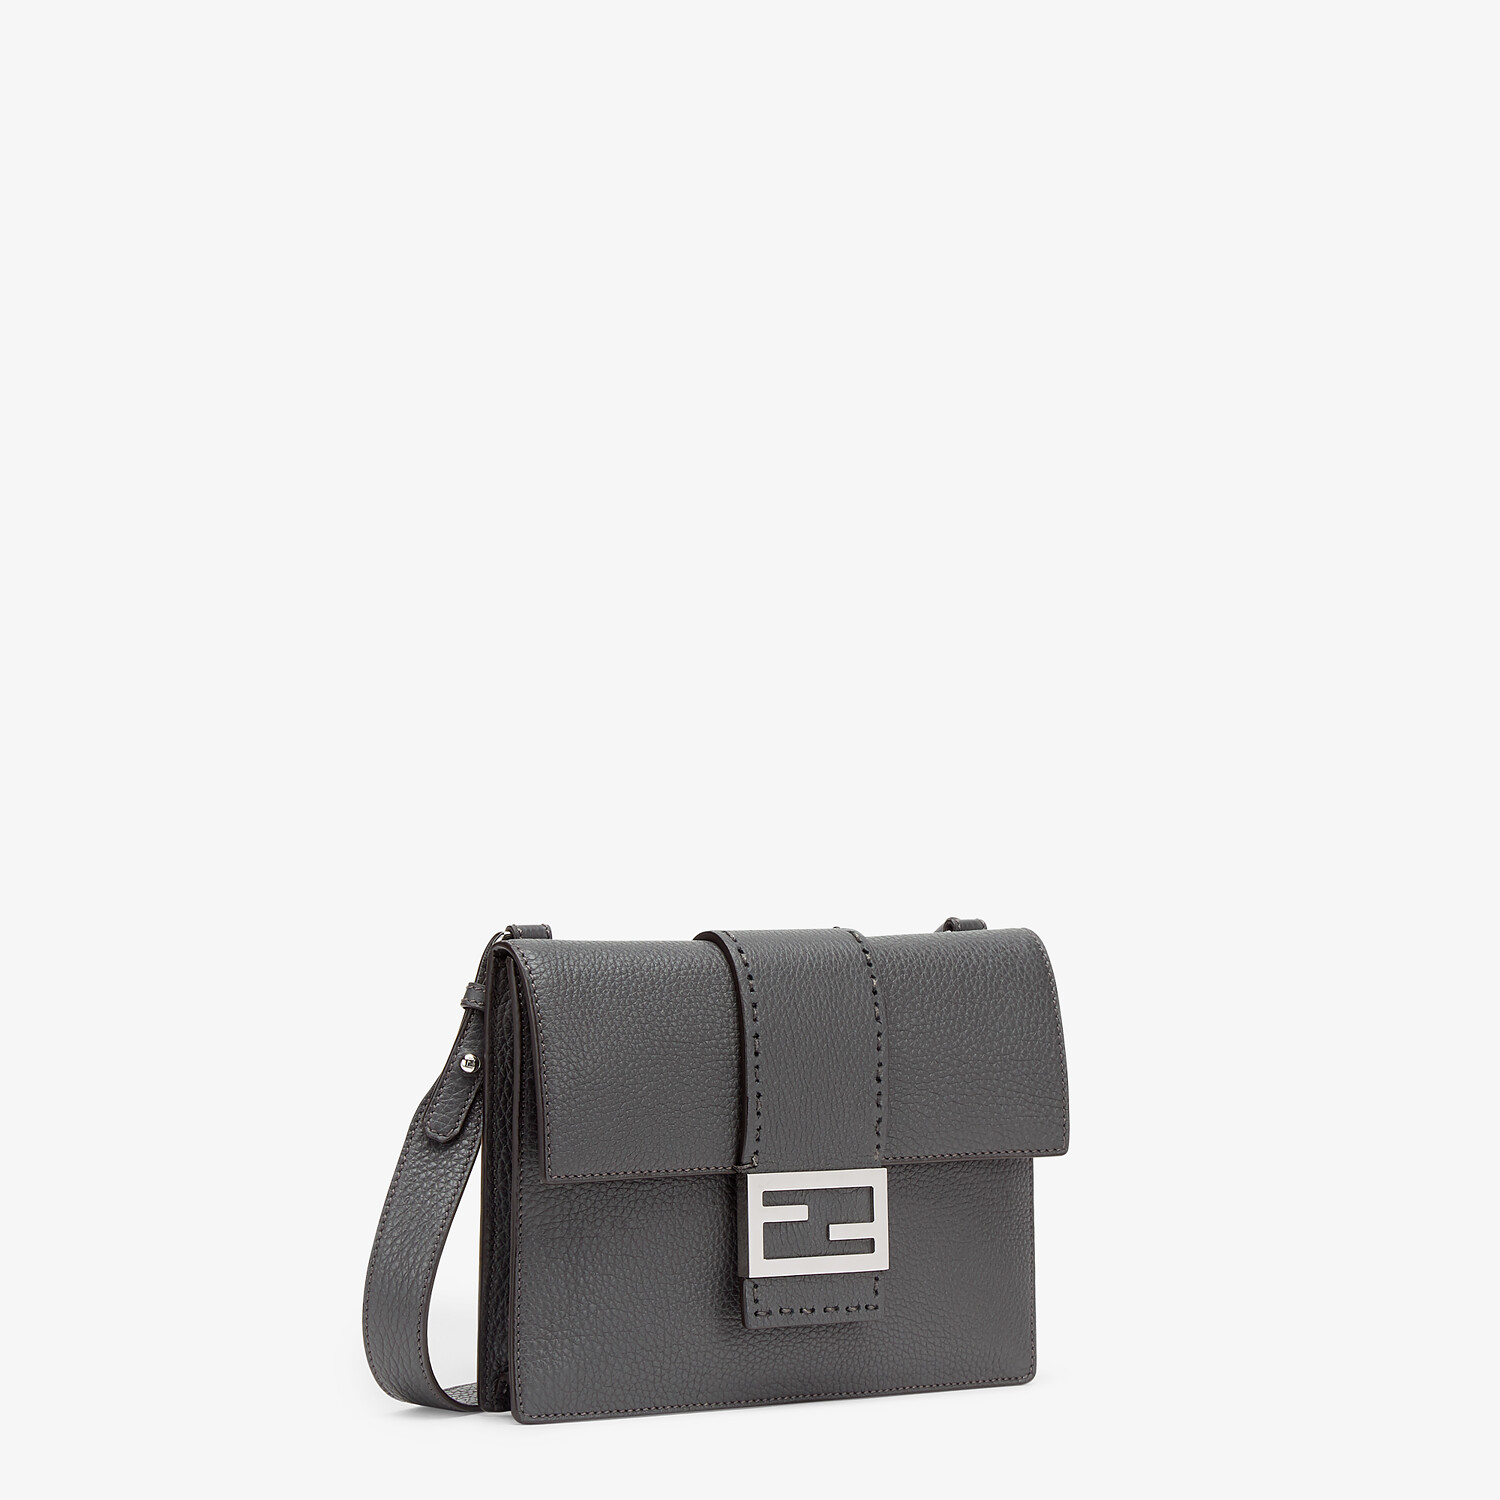 FENDI FLAT BAGUETTE - Gray leather bag - view 2 detail